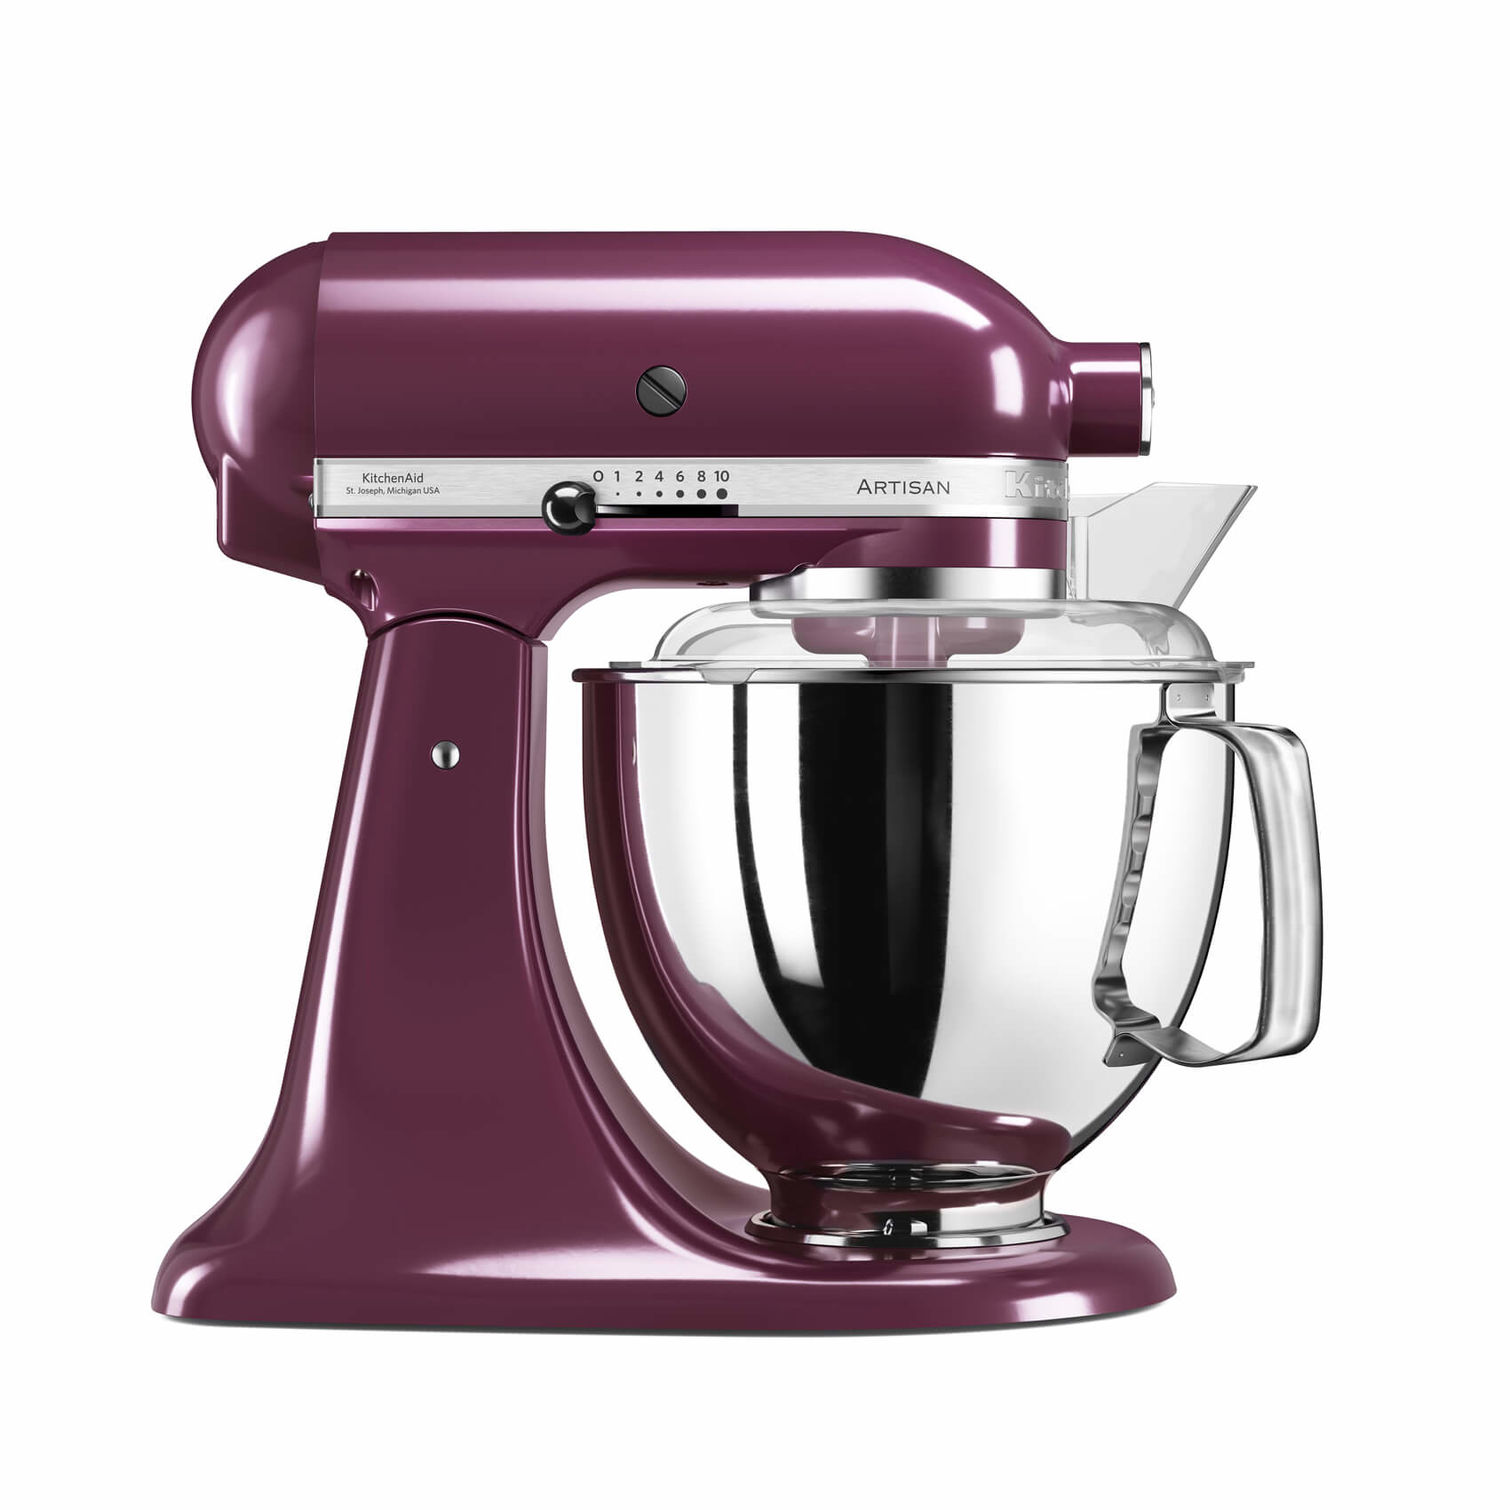 Kitchenaid Artisan Ksm175 Kitchen Machine Elderberry